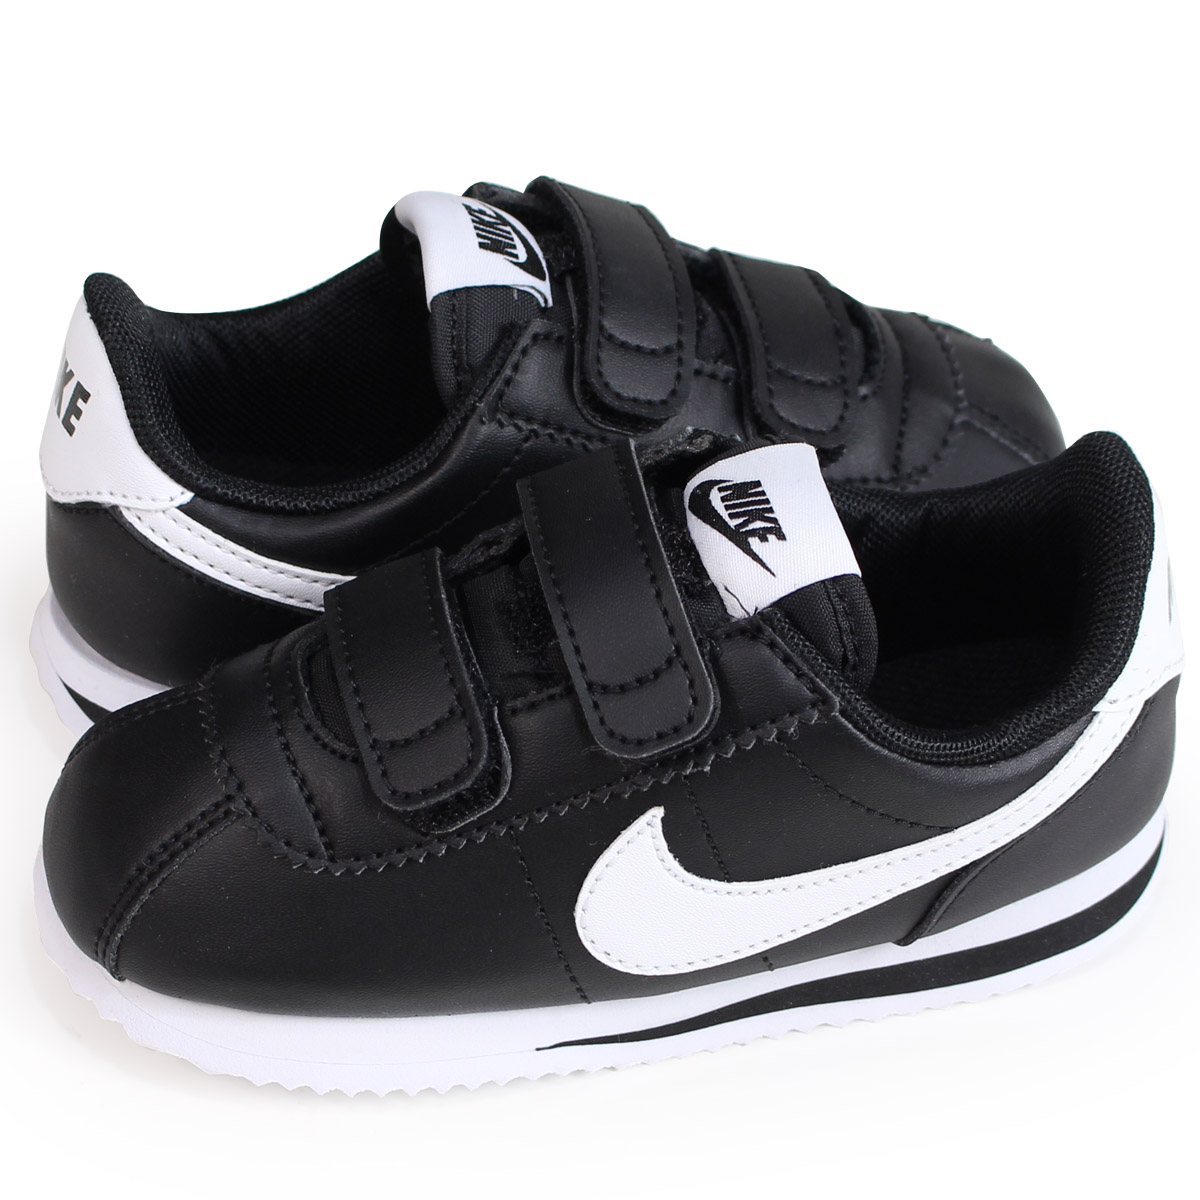 wholesale dealer 9c0ec a190c NIKE CORTEZ BASIC SL TDV ナイキコルテッツベビースニーカー 904,769-001 black [load planned  Shinnyu load in reservation product 7/20 containing]